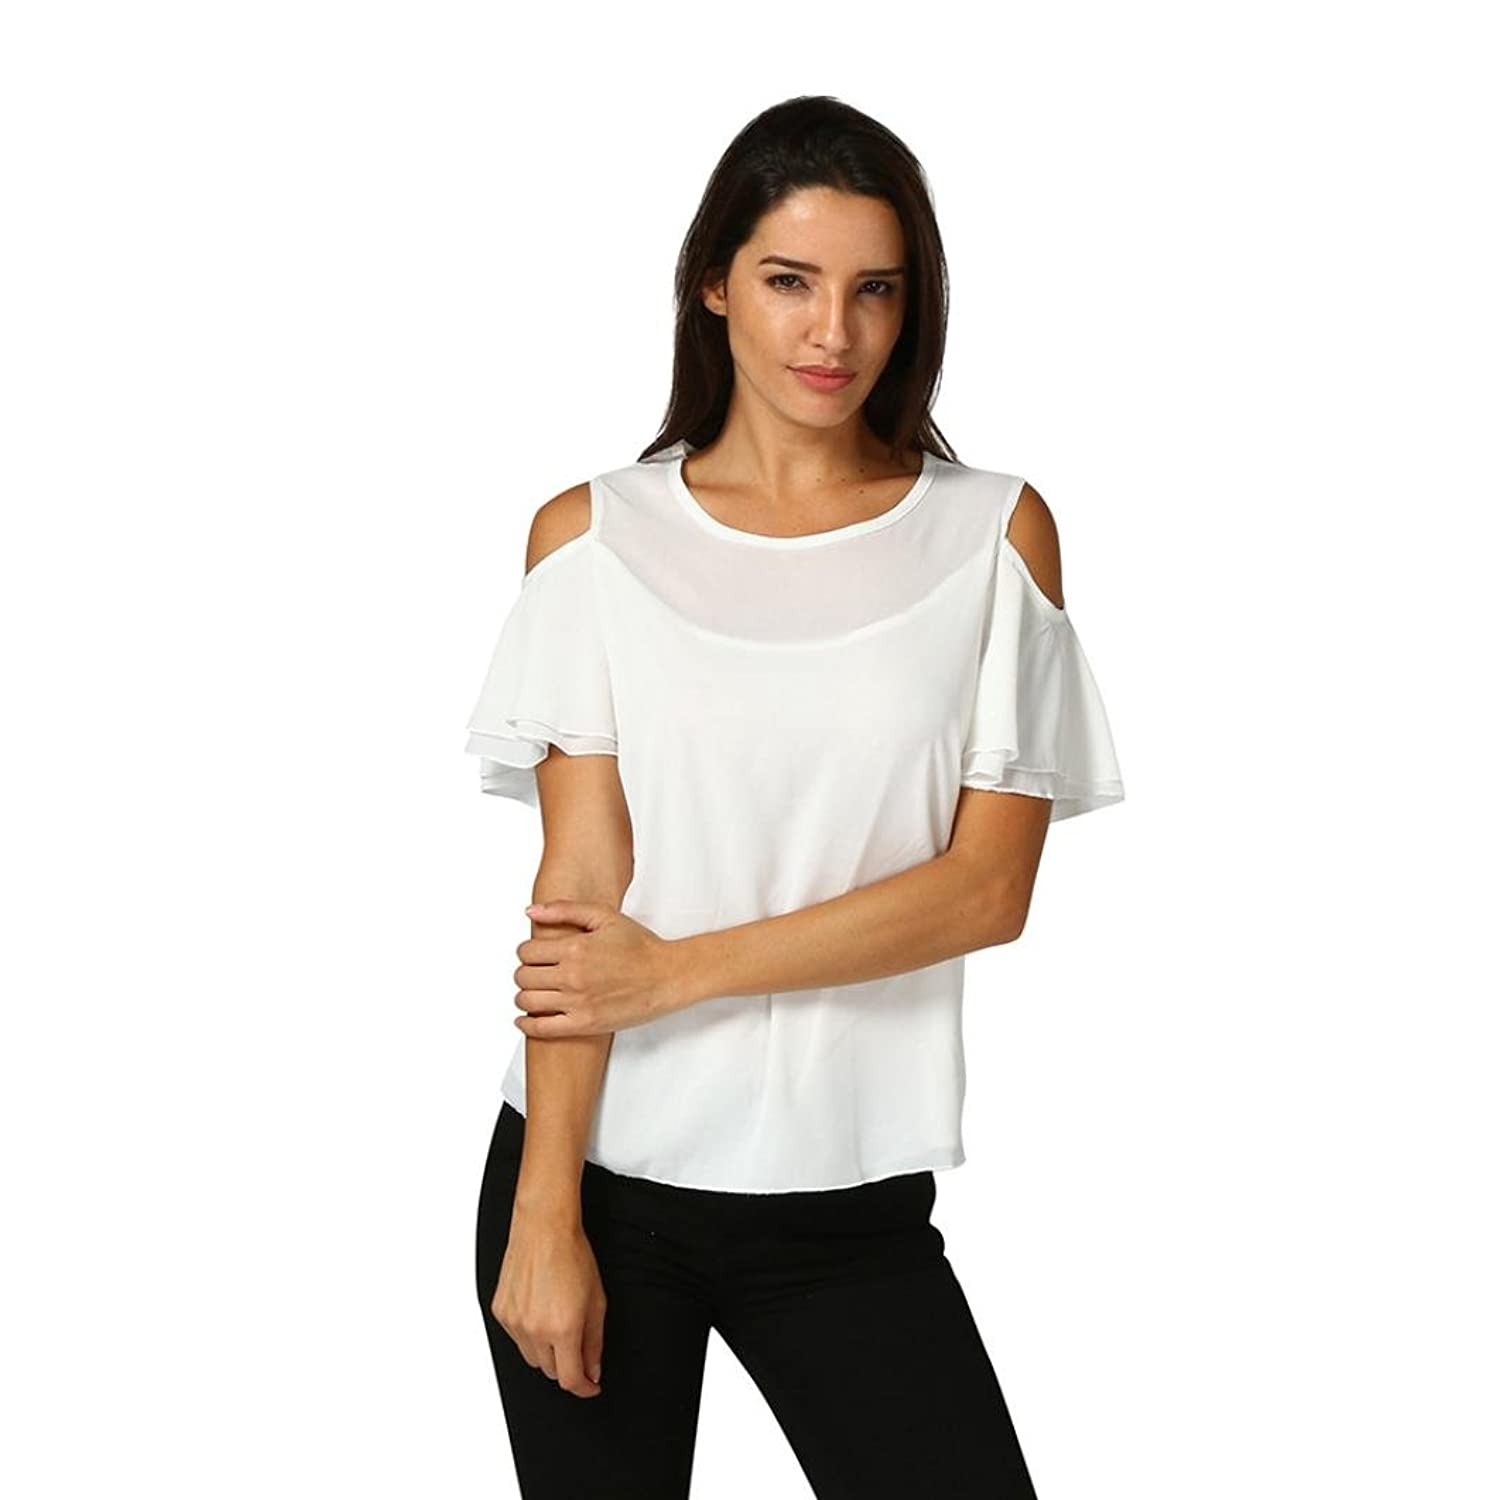 276efc8eb4953 Top 10 wholesale 3 Quarter Sleeve Blouses - Chinabrands.com